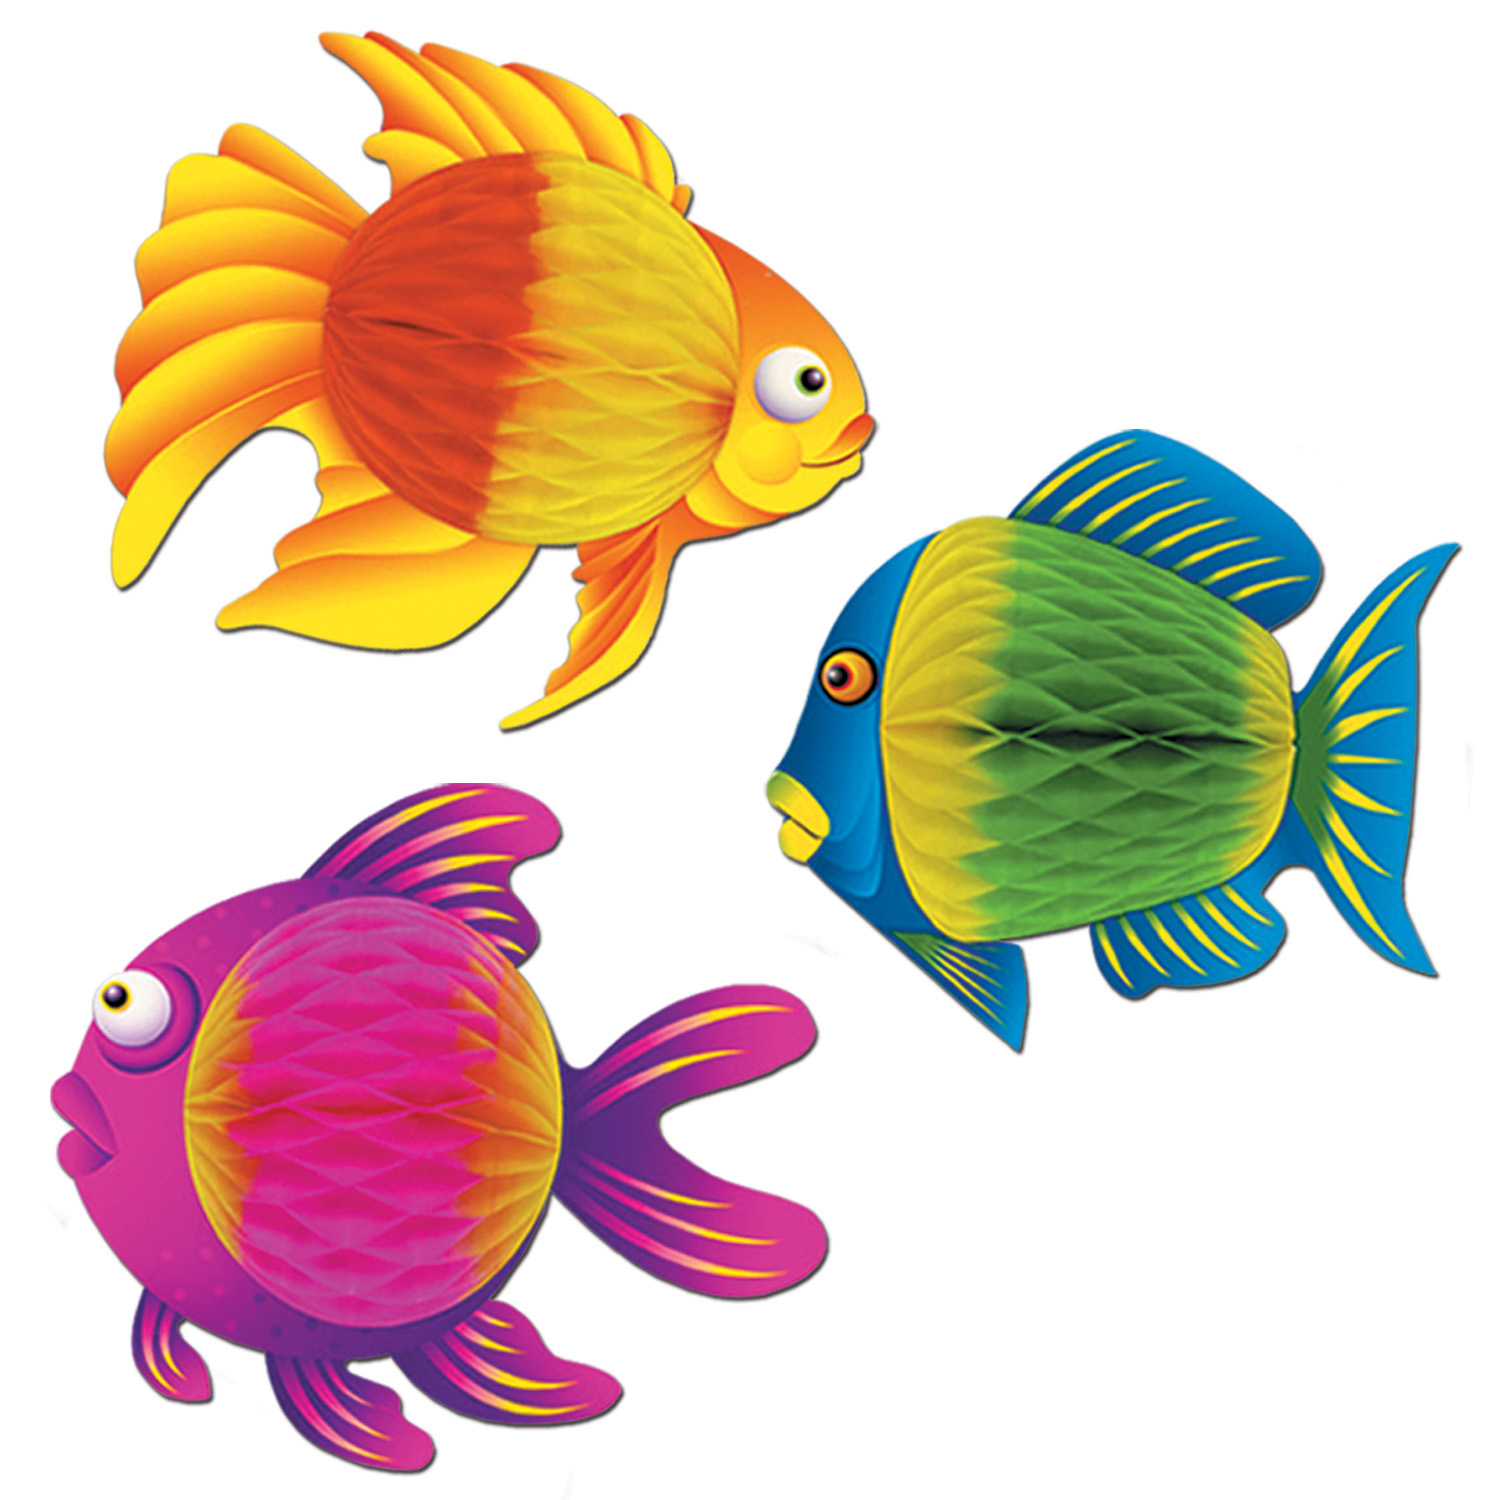 Colour-Bright Tropical Fish